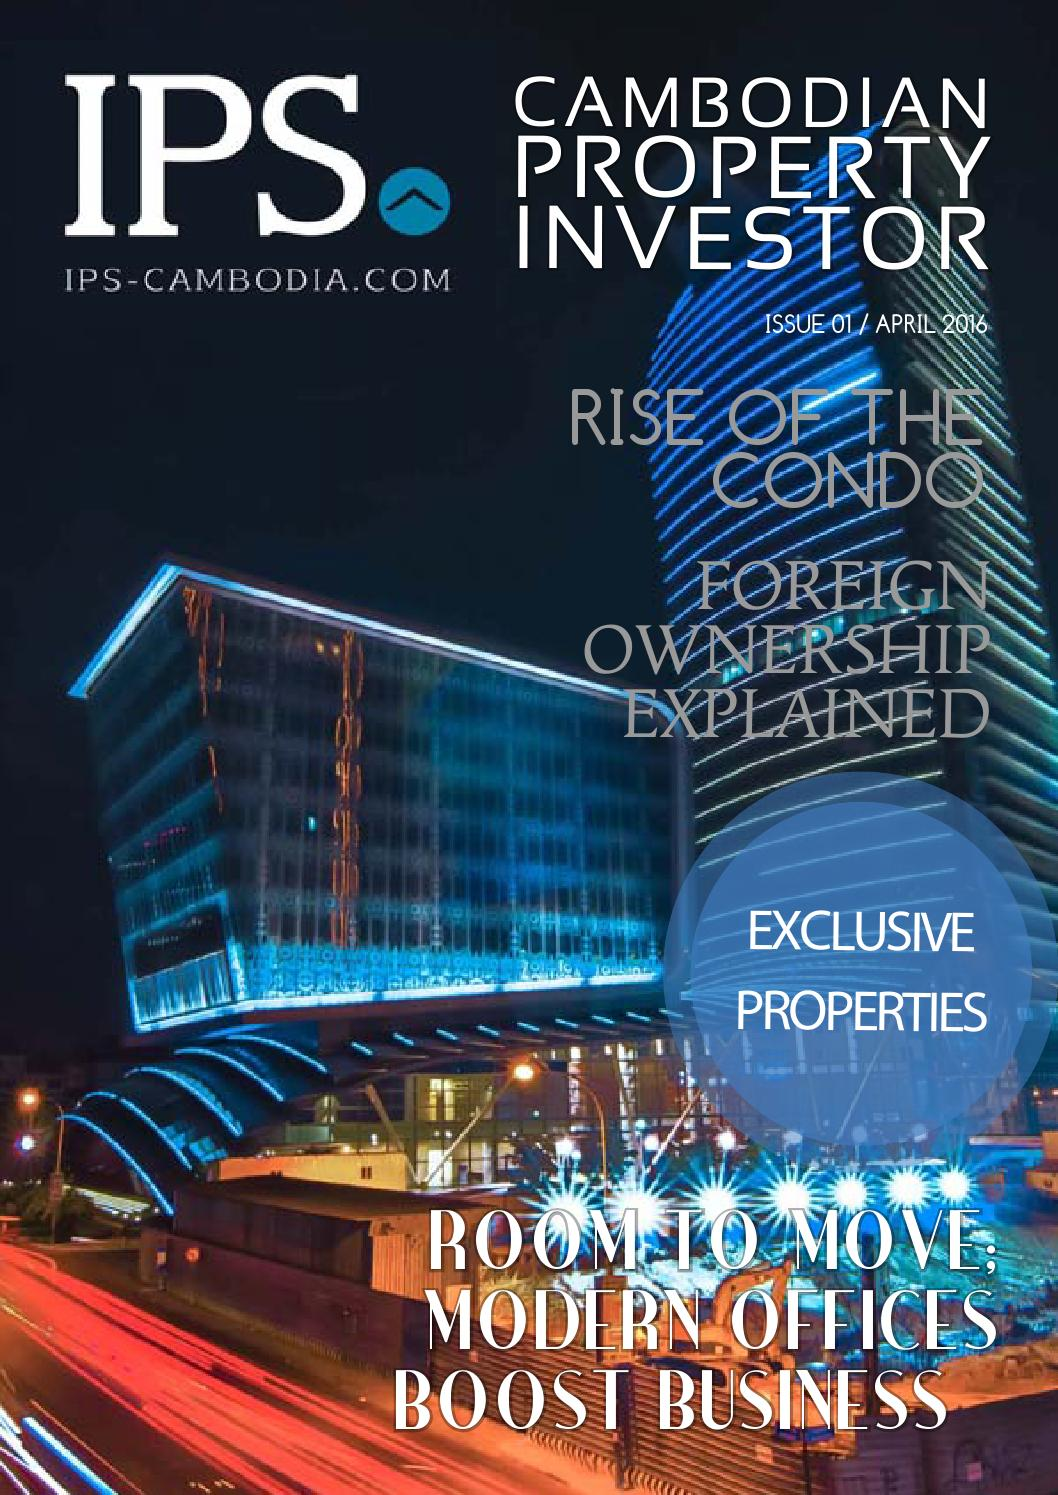 phnom penh real estate business investments adverts